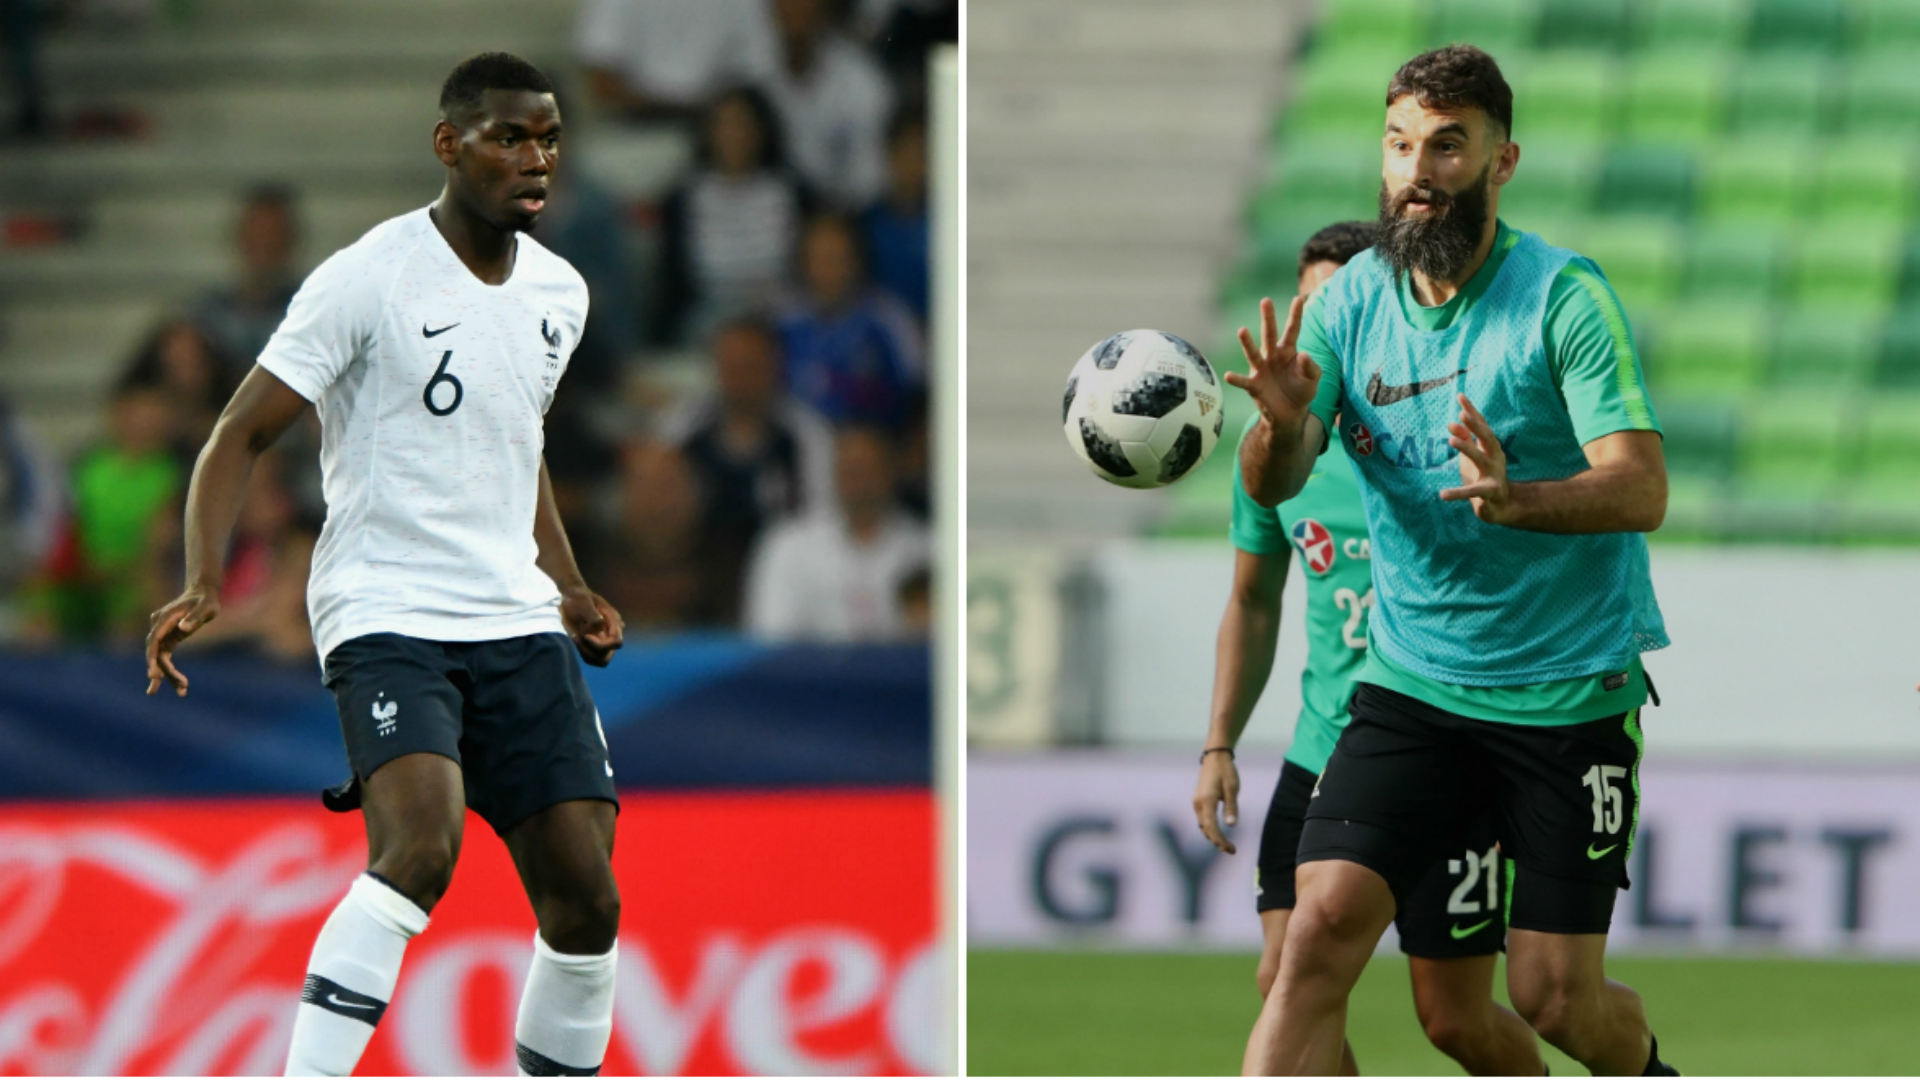 Paul-pogba-mile-jedinak_to8t87zzruch1rkgjkg2ov3m4